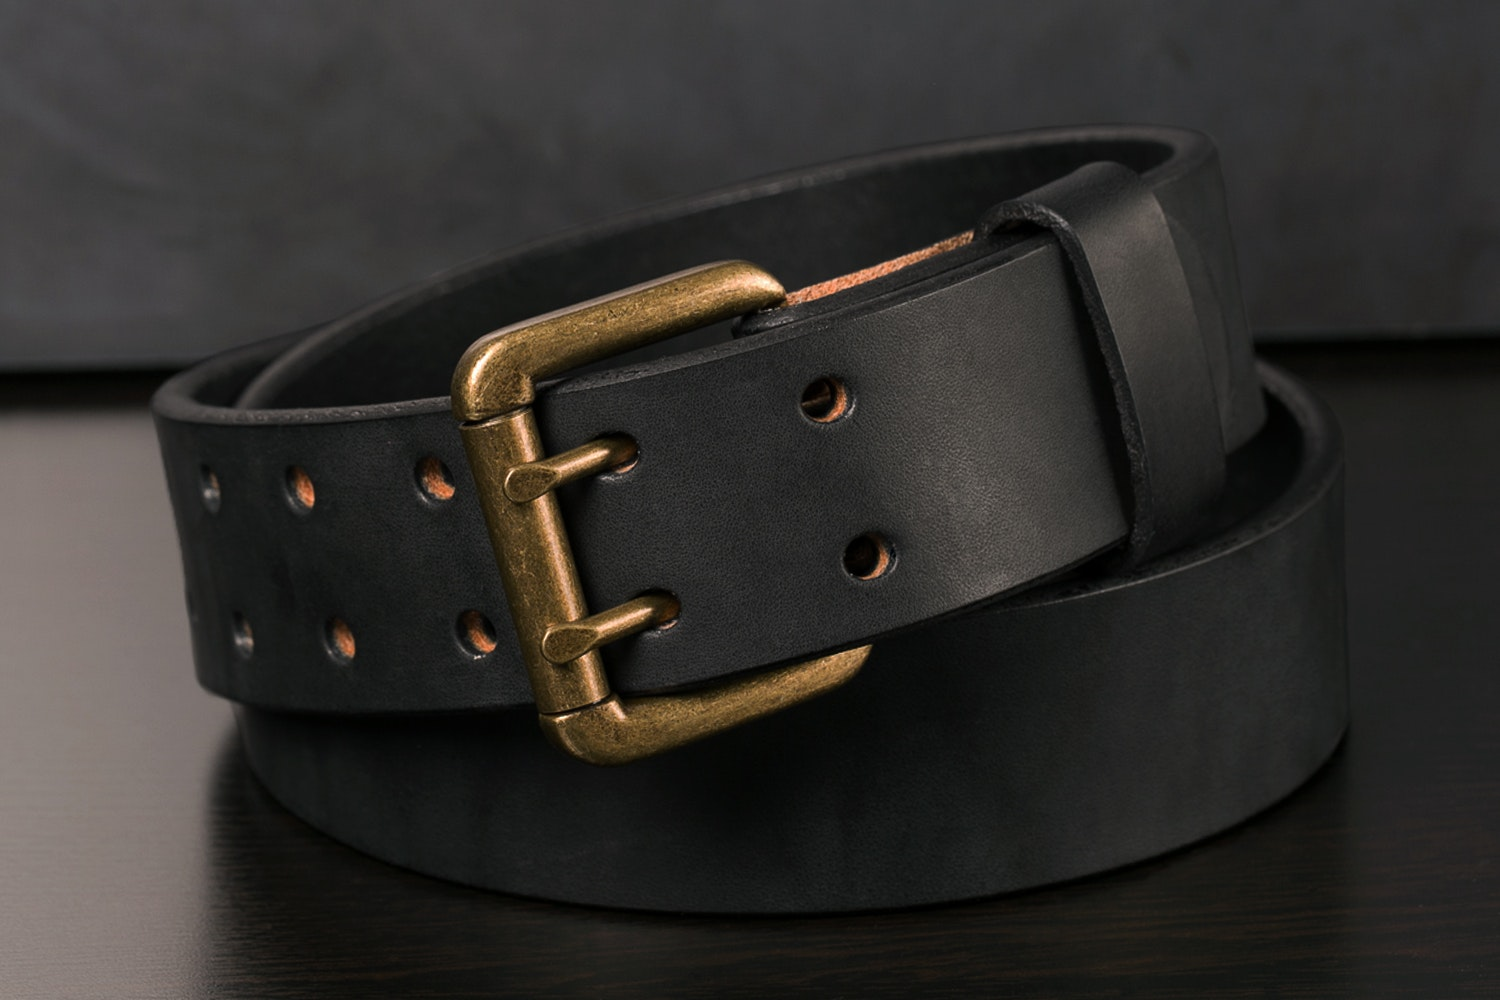 Orion Black Bridle Belt Double Hole